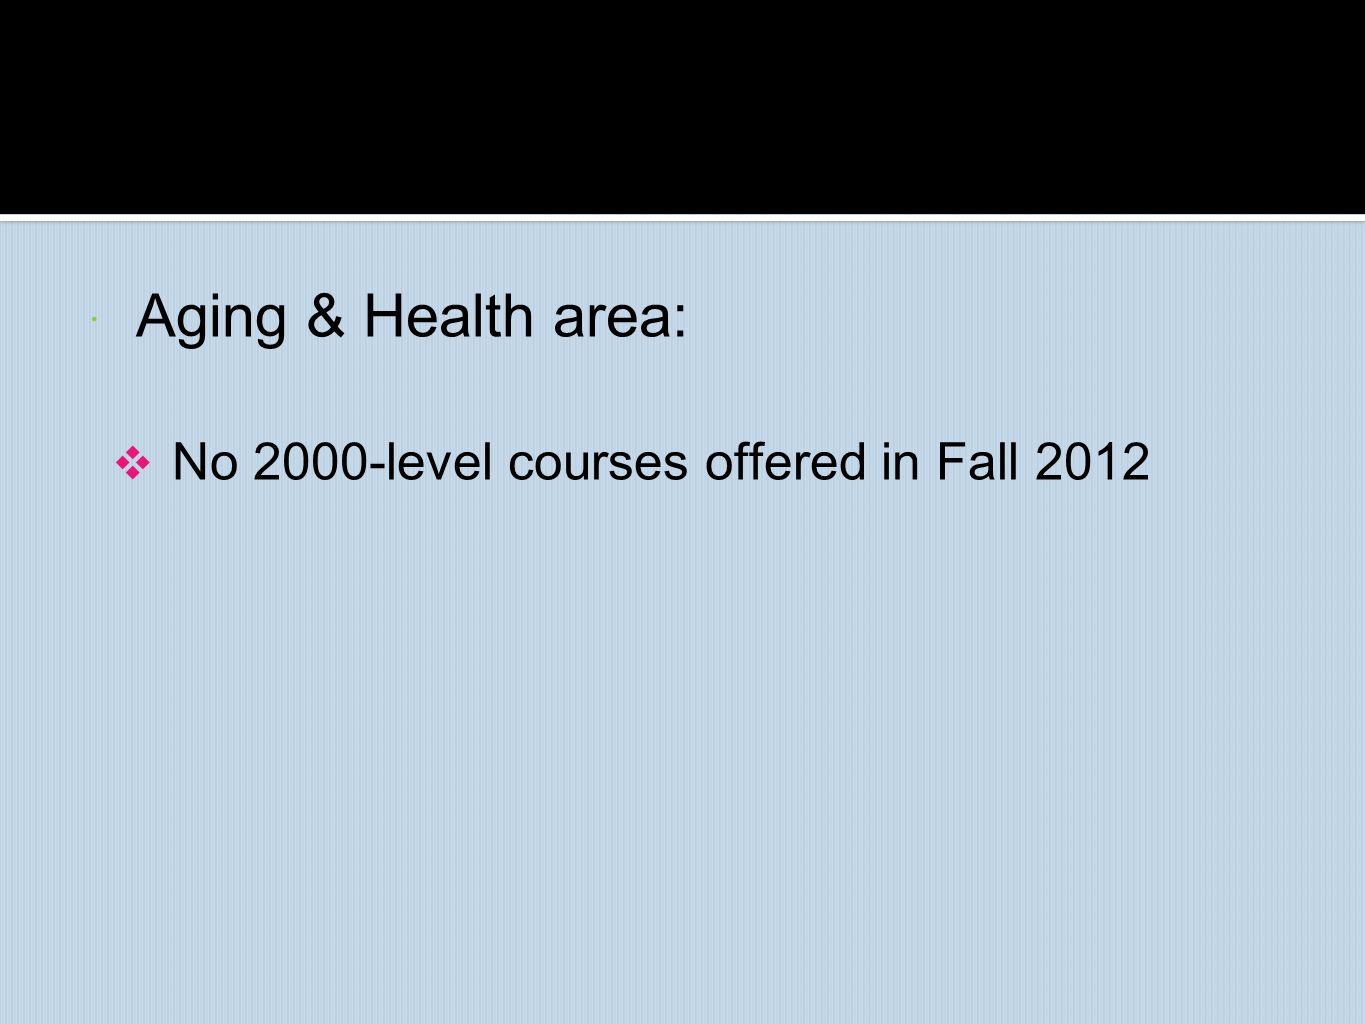  Aging & Health area:  No 2000-level courses offered in Fall 2012